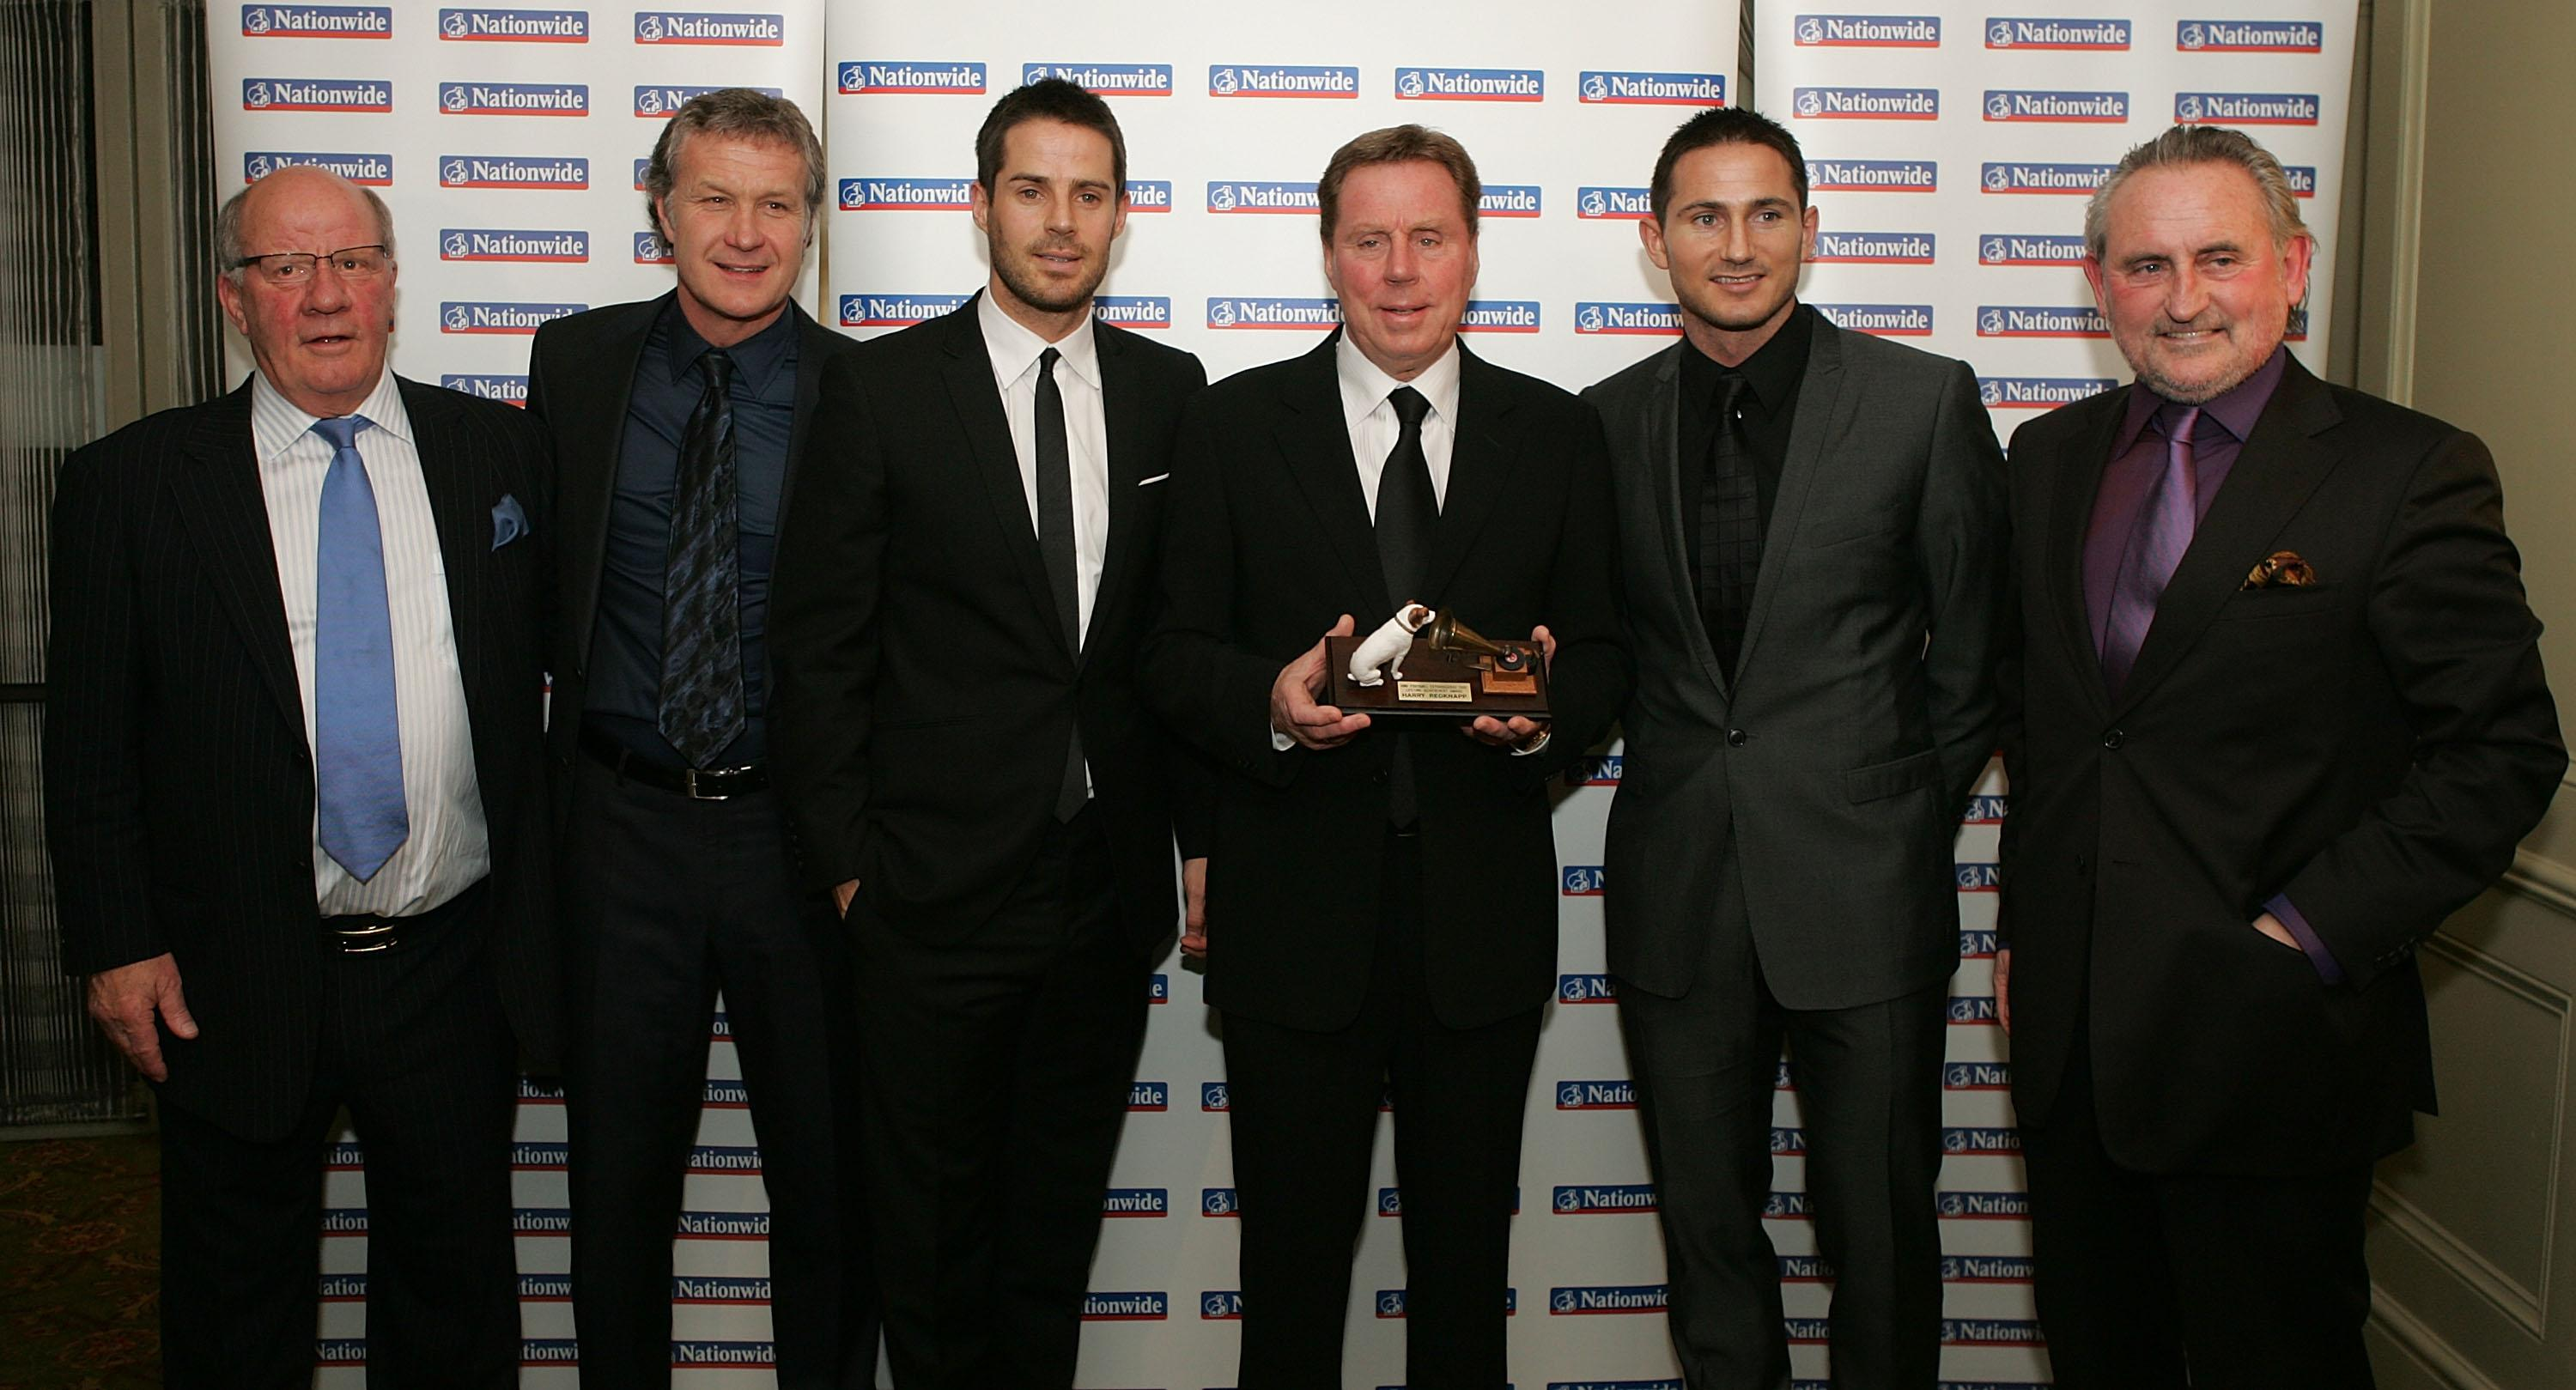 Lampard's uncle Harry Redknapp won the award in 2009